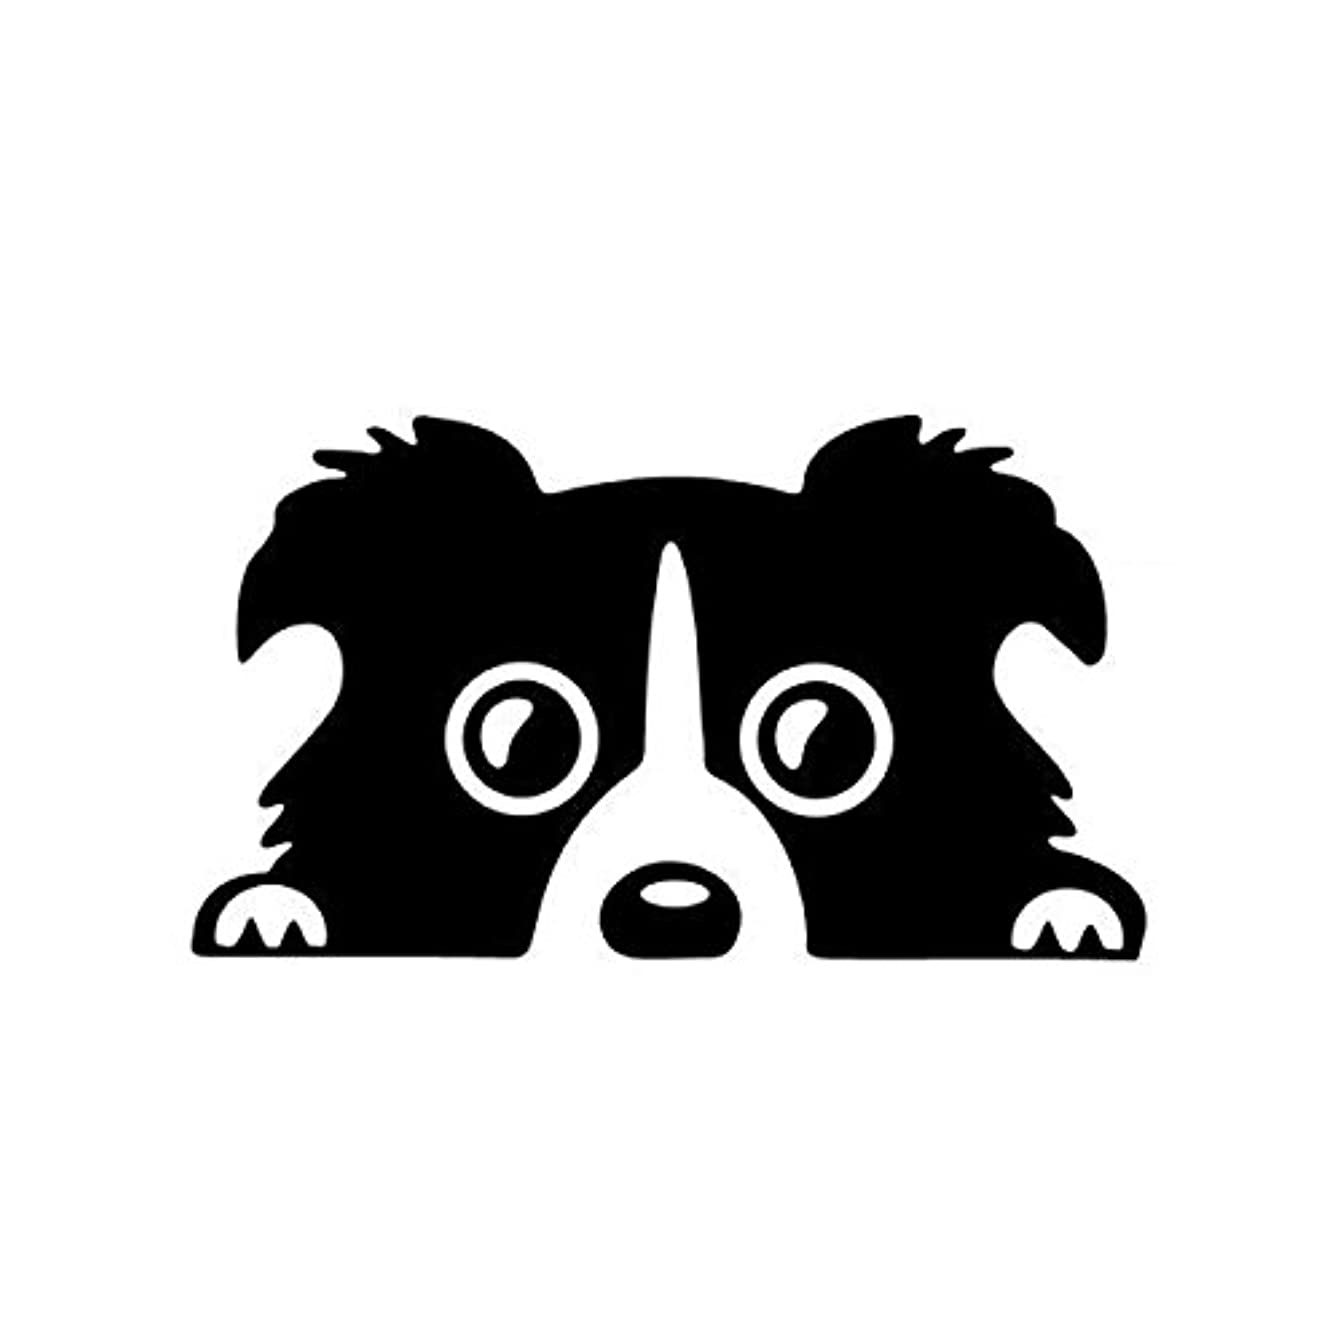 Exterior Accessories - Border Collie Sticker Auto Decal Accessories Black - 14x8cm Car Lovely Pet Dog Sticker Funny Decal Auto Bumper Window Body Decal - Car Stickers And Decals Pets - 1PCs